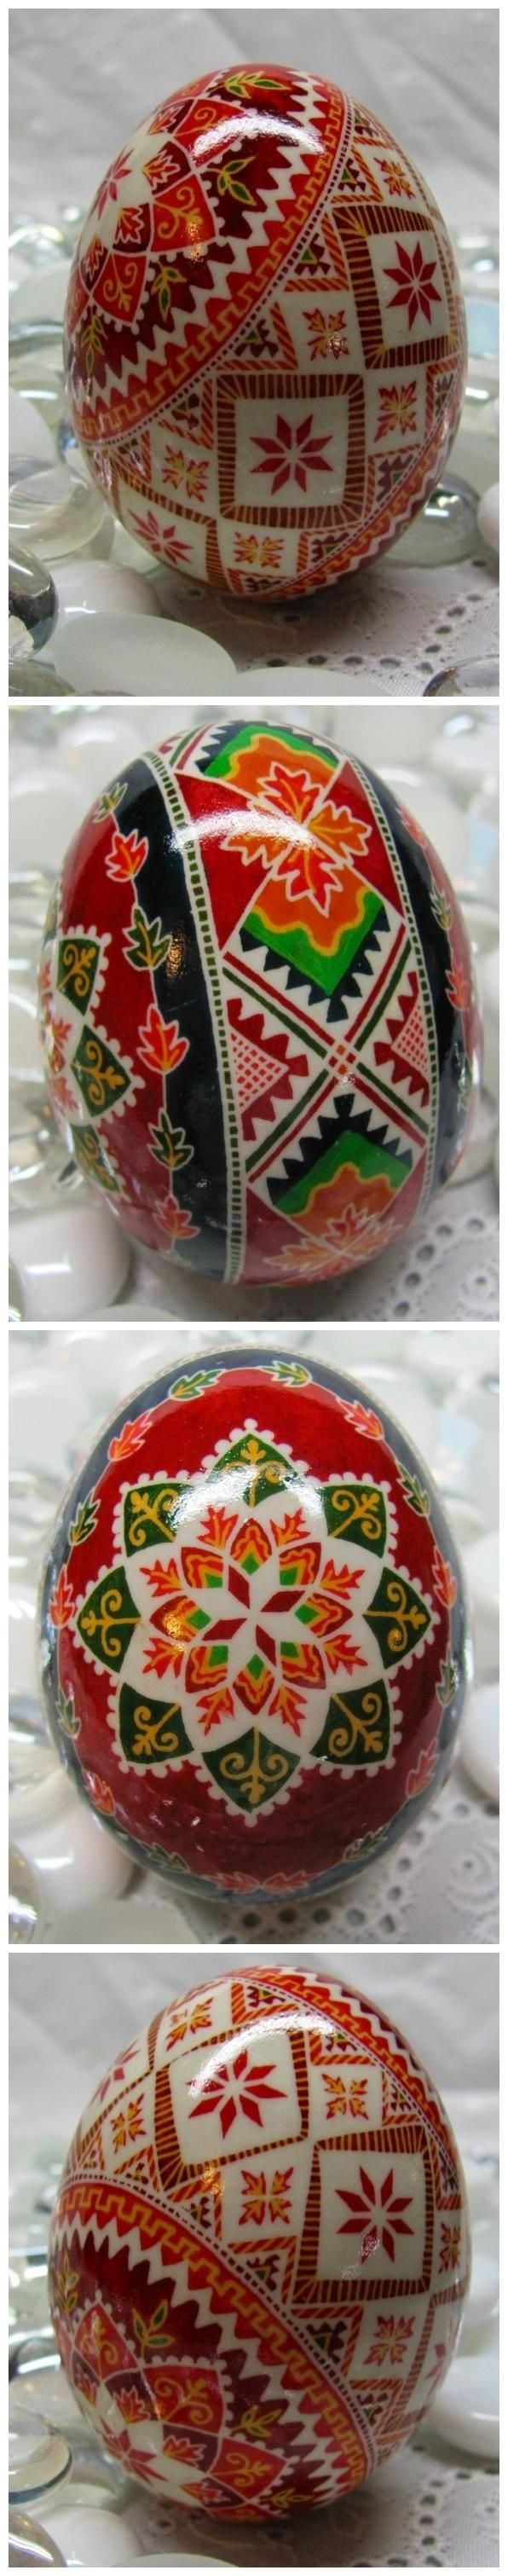 """Pysanky     pysanky A note on pronunciation, despite what you may have heard on television, a supplier of pysanky tools or from an instructor in a local class, """"Pysanka"""" is correctly pronounced """"Pih-sahn-kah""""  with the plural """"Pih-sahn-kih"""". All with short vowels.  The term """"pysanky"""" is not, never was, nor will it ever be correctly pronounced """"pie-SAN-kee or pizz-an-ki"""""""